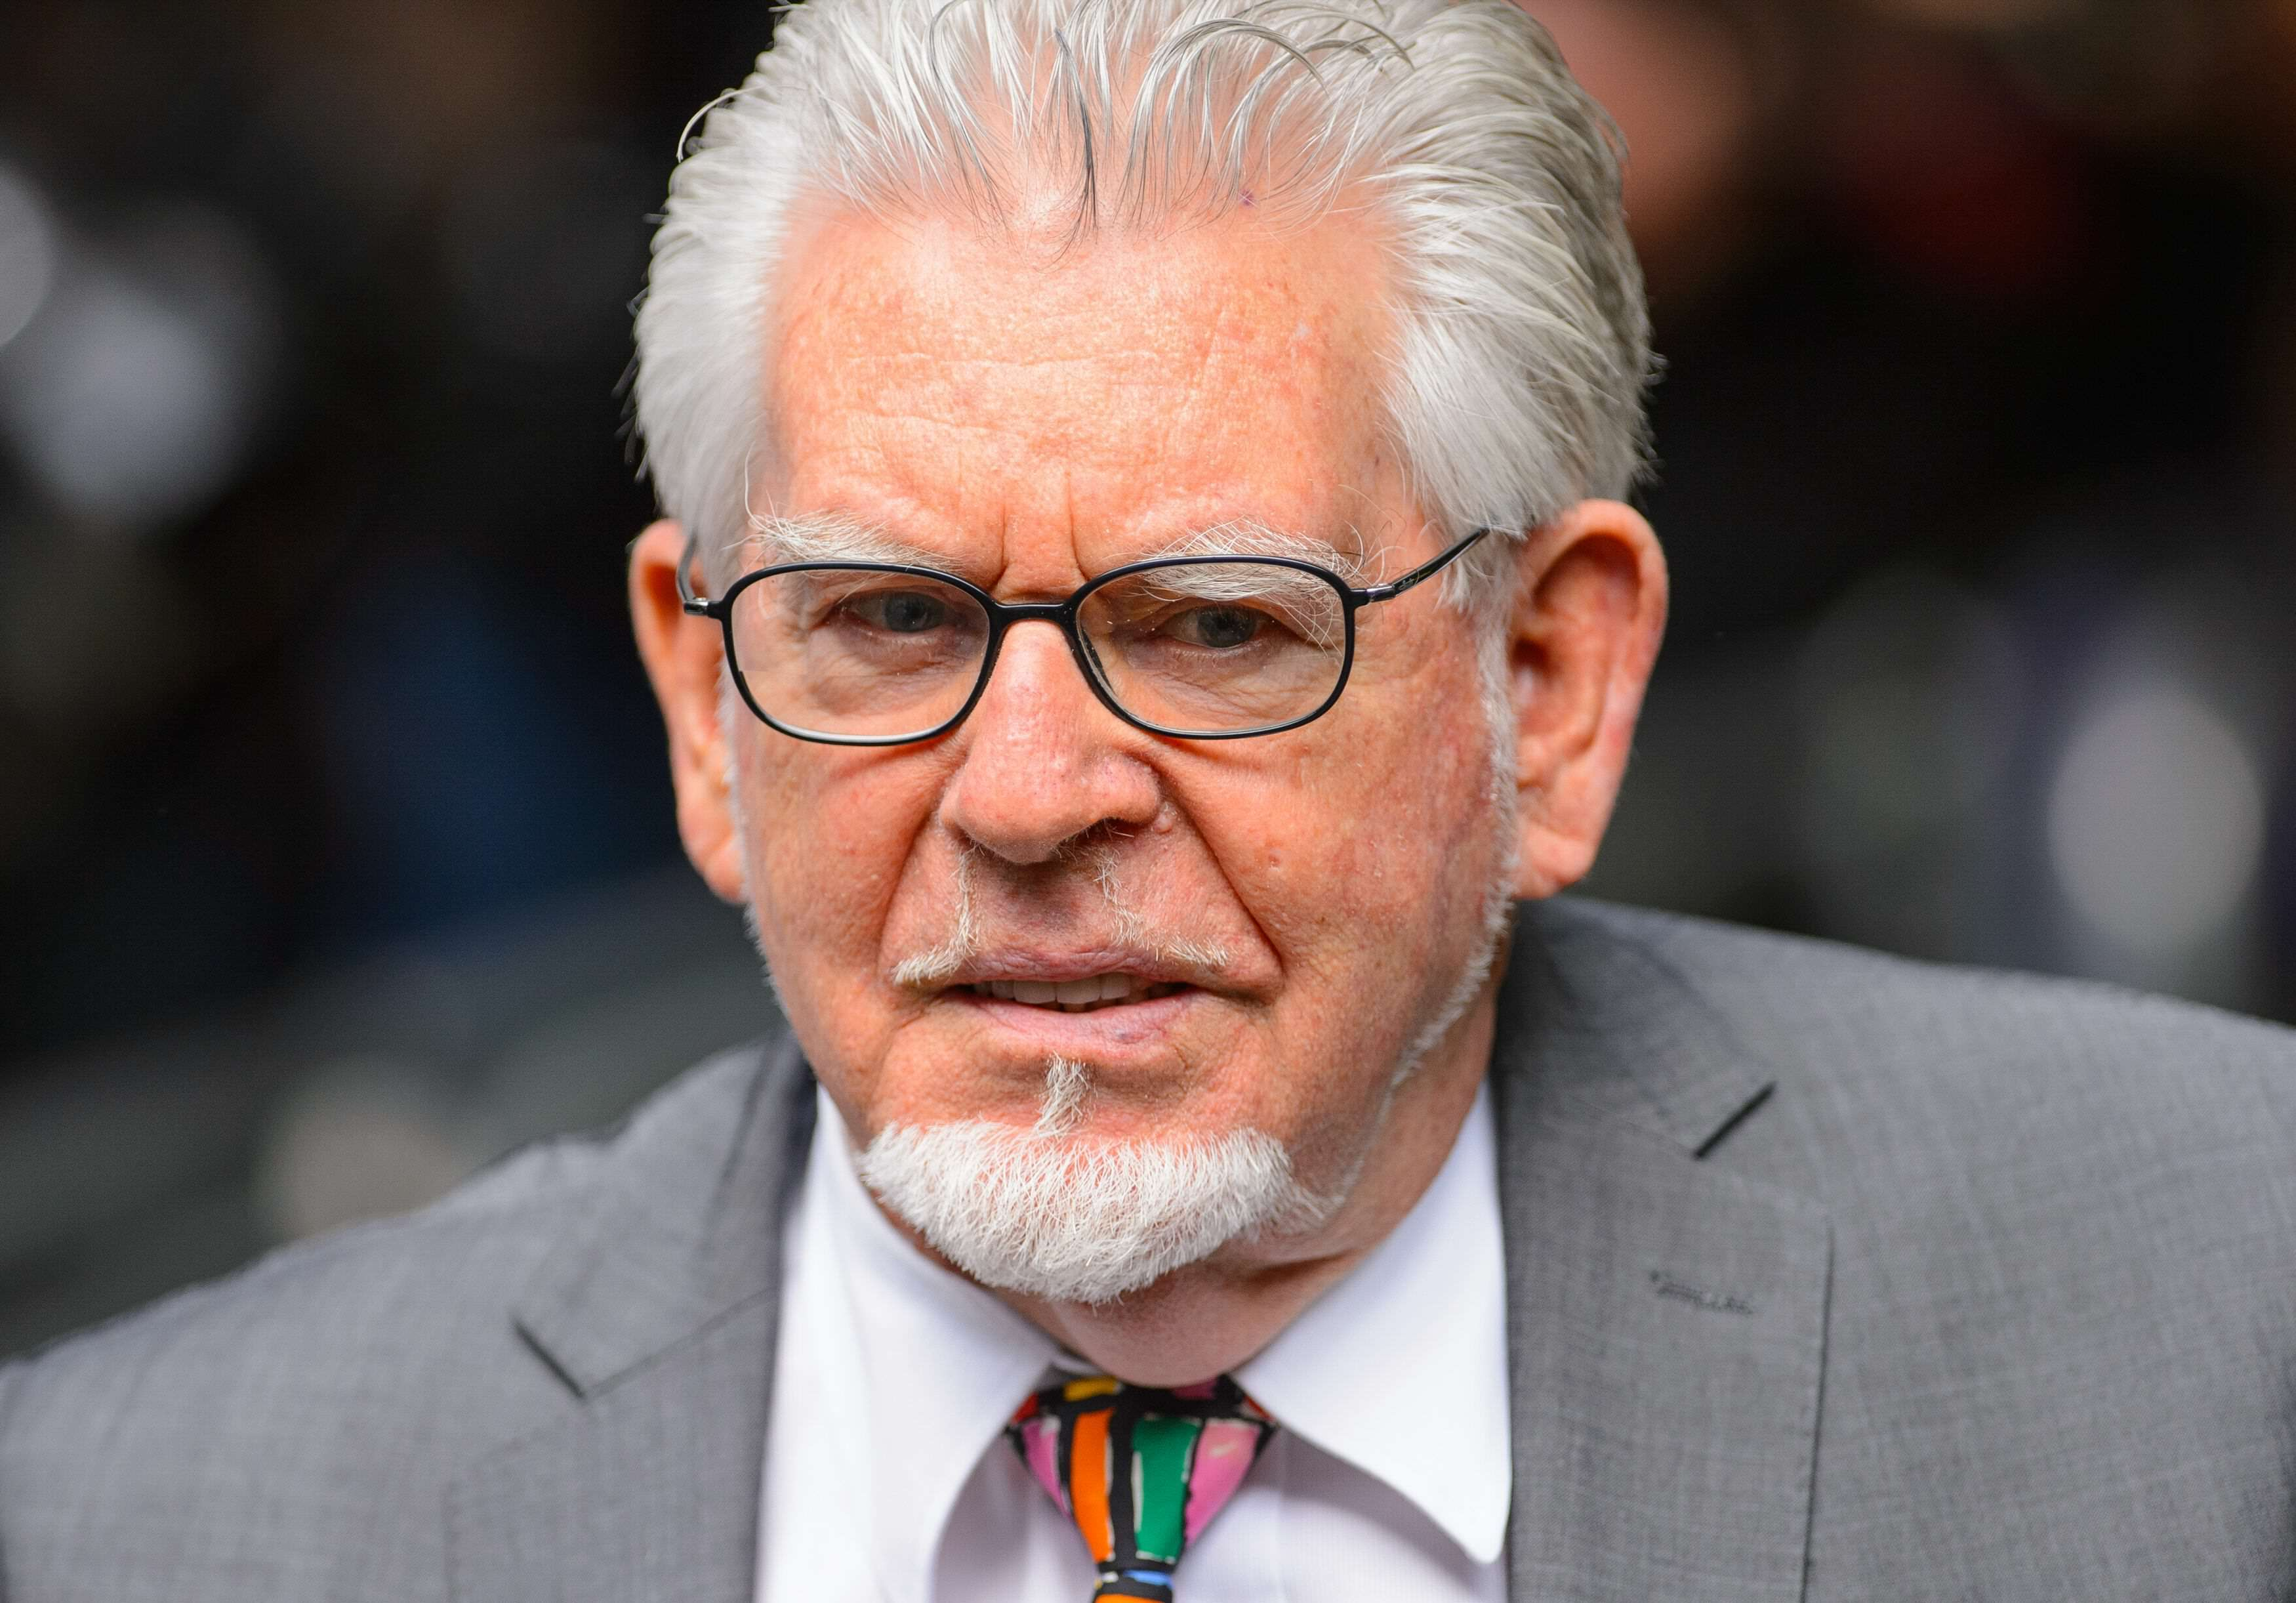 Rolf Harris Wrote This Twisted Song Taunting His Victims, Apparently rolfharris1